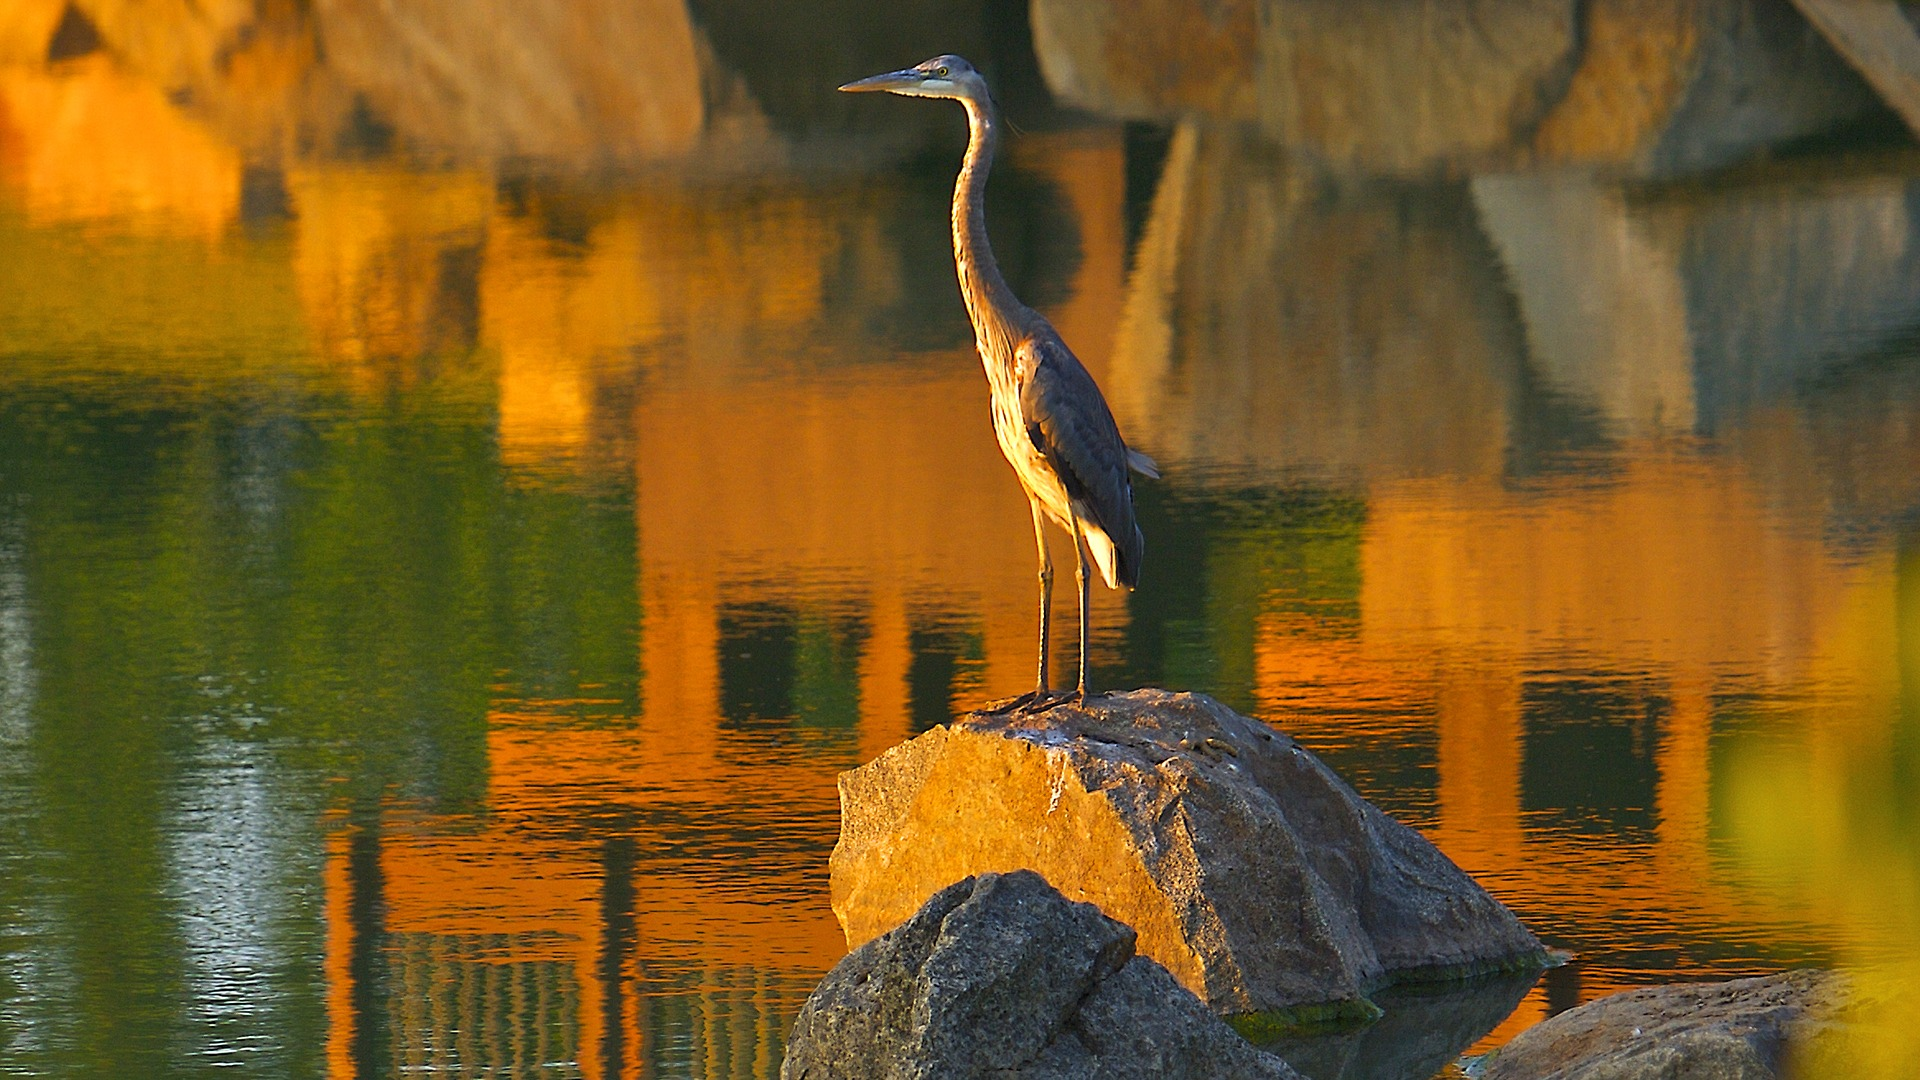 A heron on a rock in Brambleton pond.